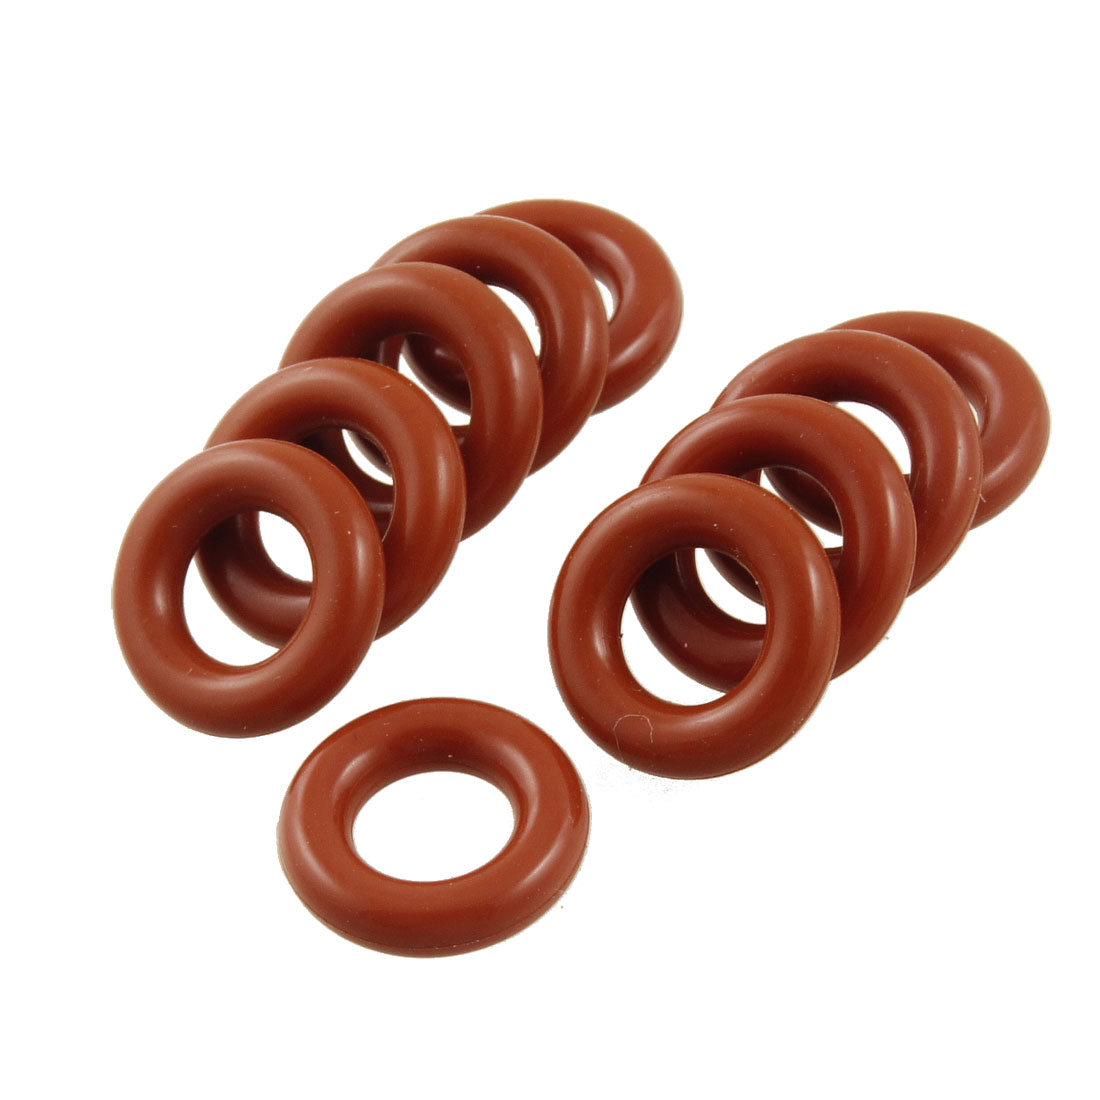 UXCELL 10 Pcs Silicone <font><b>O</b></font> <font><b>Ring</b></font> Seal Sealing <font><b>7mm</b></font> x 13mm x 3mm image